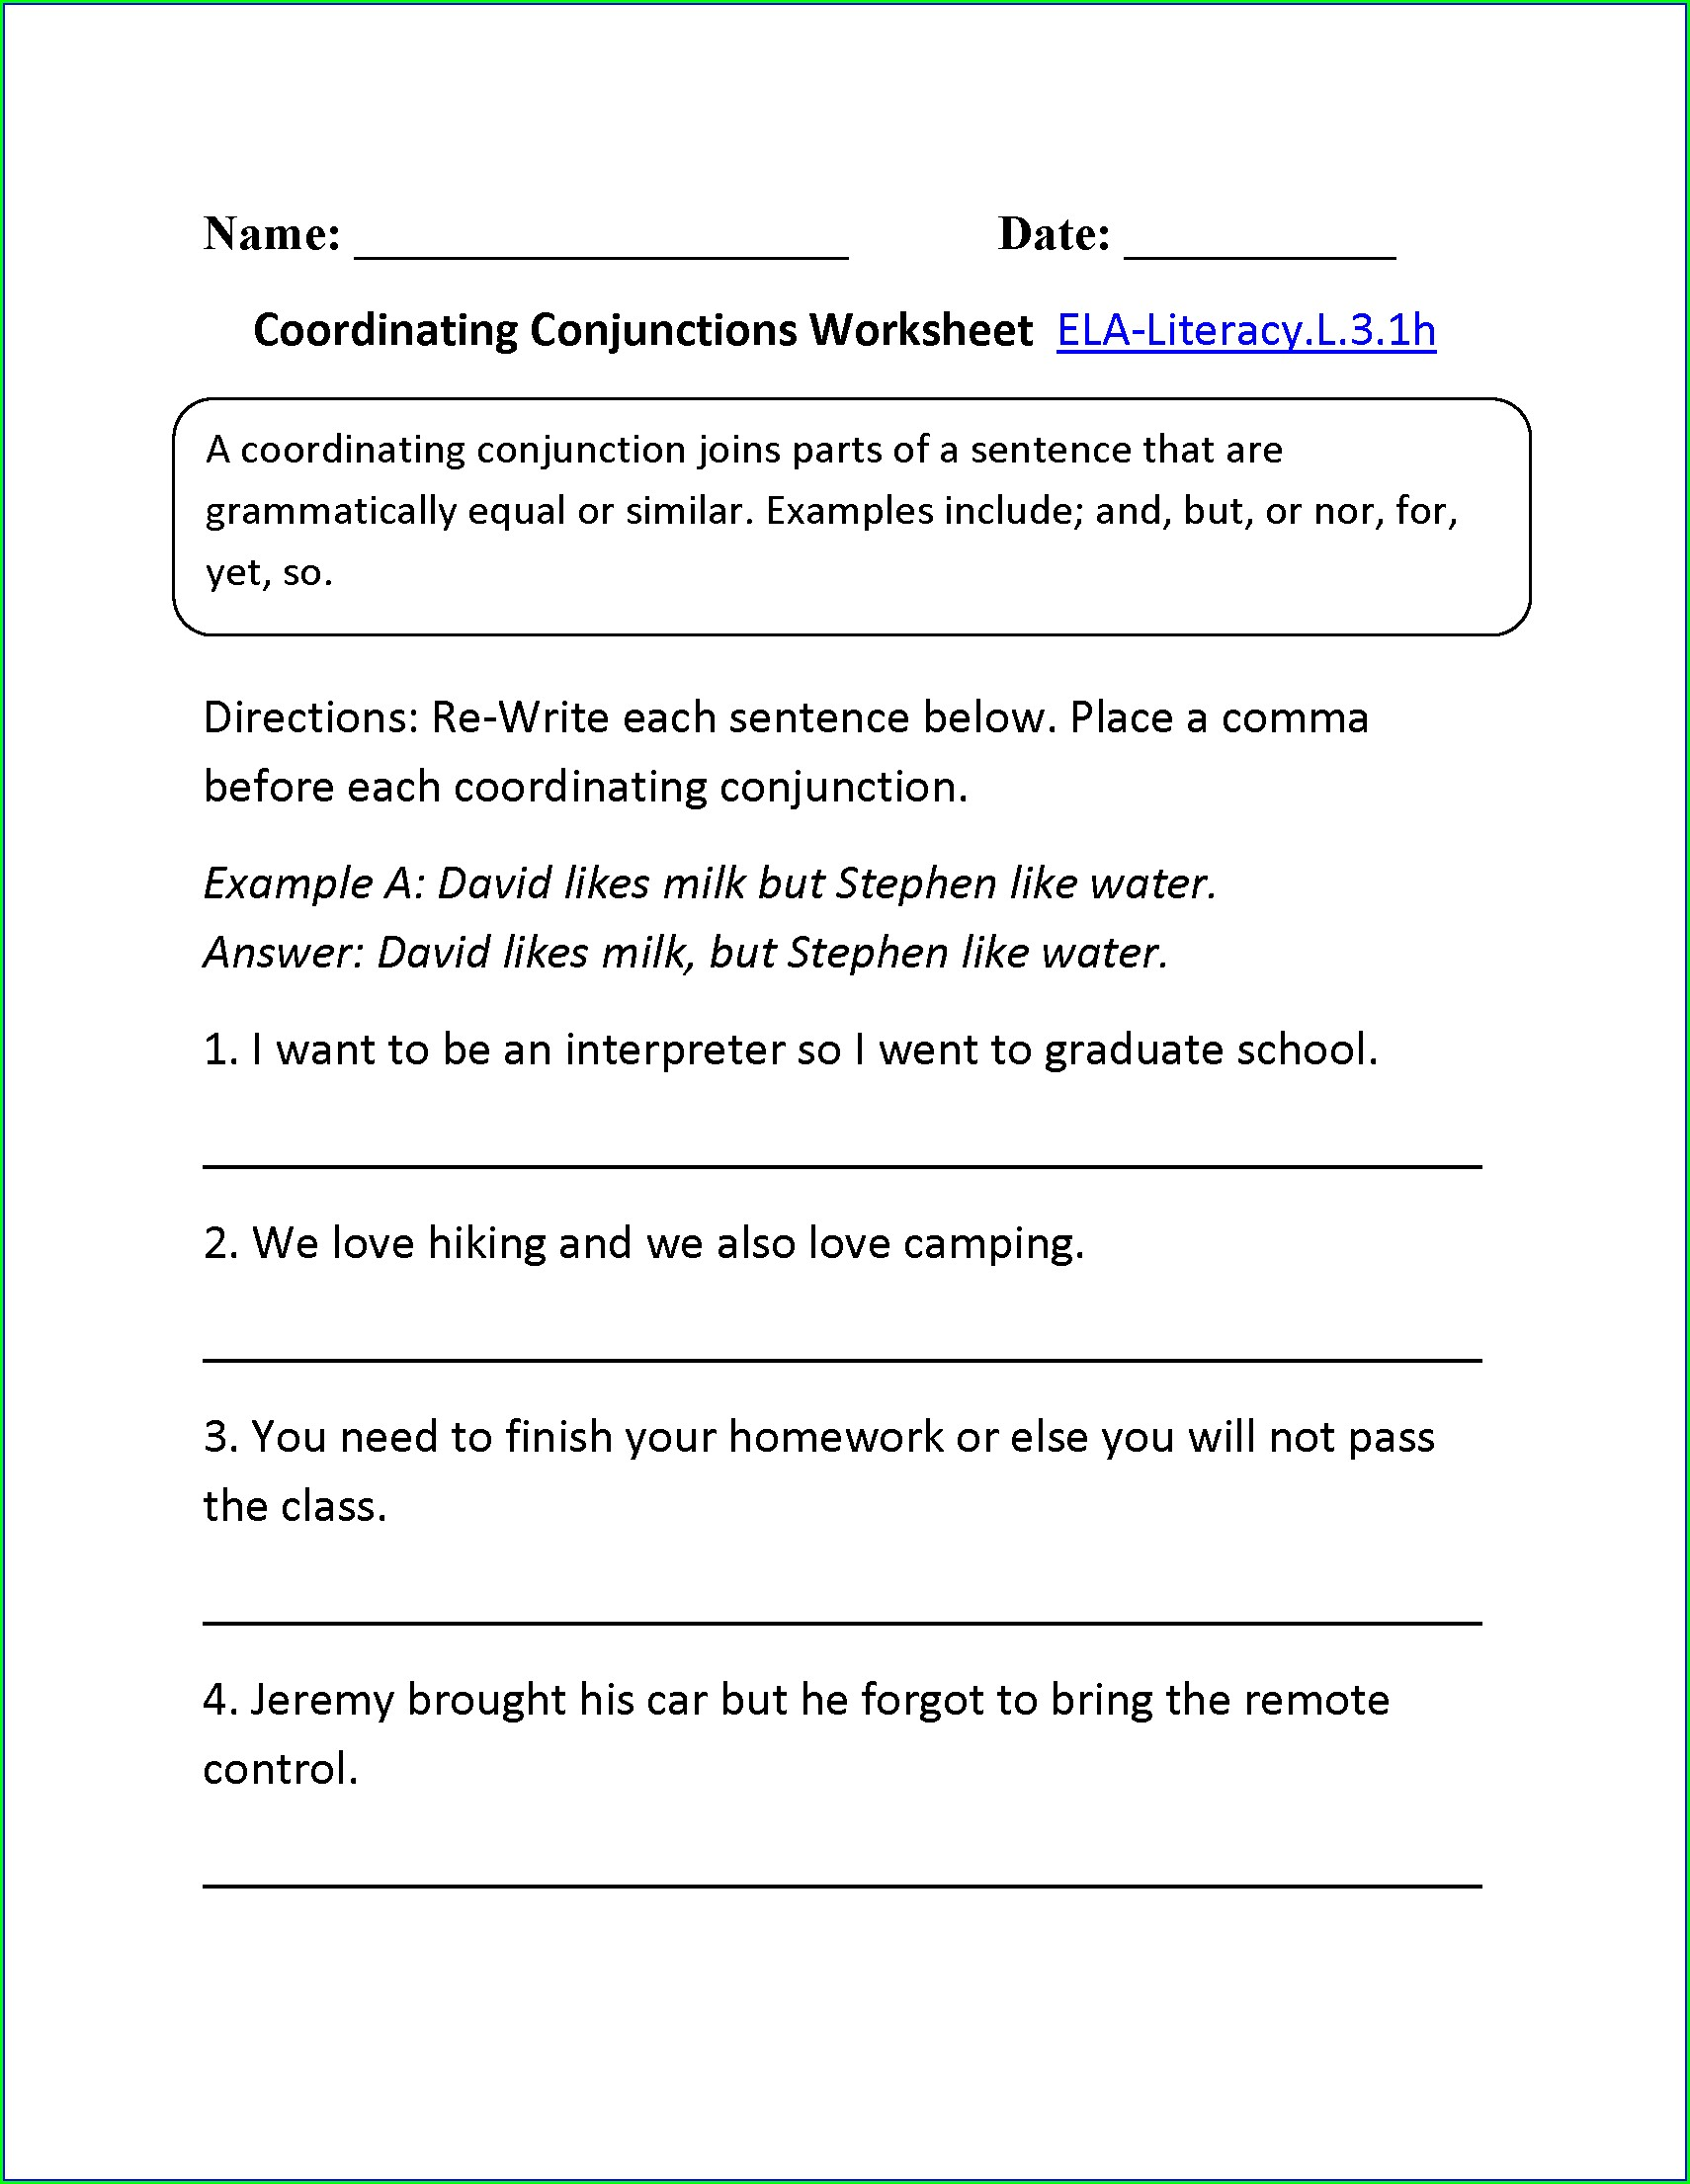 Printable Conjunction Worksheet For Class 3